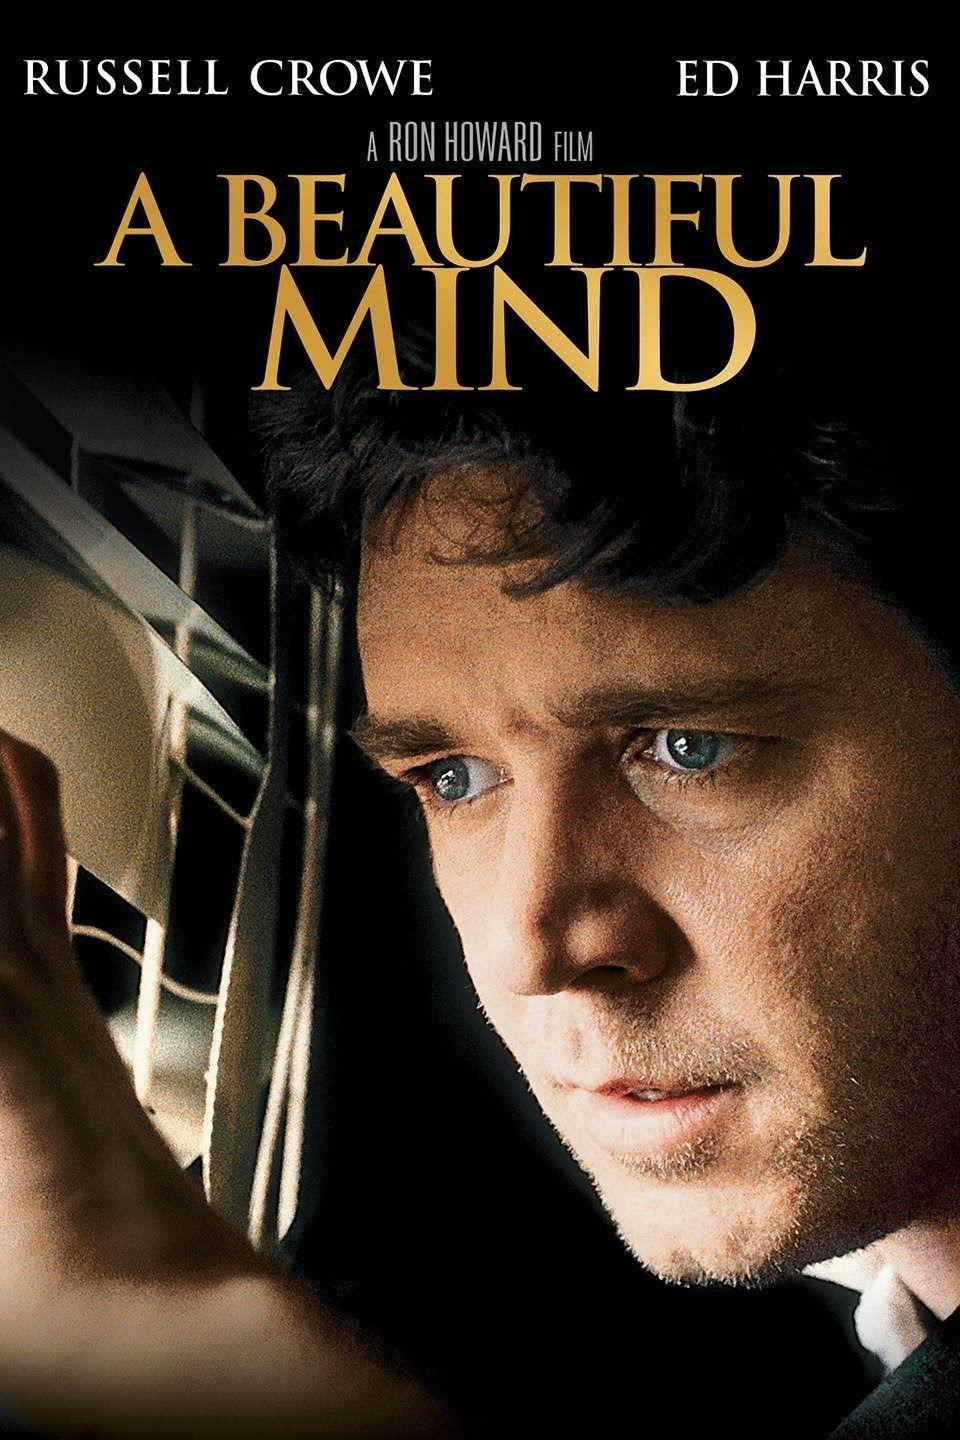 """<p><a class=""""link rapid-noclick-resp"""" href=""""https://www.amazon.com/Beautiful-Mind-Russell-Crowe/dp/B00ENYKBD0/ref=sr_1_1?dchild=1&keywords=a+beautiful+mind&qid=1614181160&sr=8-1&tag=syn-yahoo-20&ascsubtag=%5Bartid%7C10063.g.35716832%5Bsrc%7Cyahoo-us"""" rel=""""nofollow noopener"""" target=""""_blank"""" data-ylk=""""slk:Watch Now"""">Watch Now</a></p><p>This 2001 biographical drama is based on the life of Nobel Prize-winning mathematician and economist John Nash (and inspired by the Pulitzer-winning book of the same name by Sylvia Nasar). Russell Crowe plays the brilliant Nash, whose rising career and stardom is at risk of being derailed by his own personal demons. <em>A Beautiful Mind</em> won four Academy Awards, for Best Picture, Best Director, Best Adapted Screenplay, and Best Supporting Actress (Jennifer Connelly).</p>"""